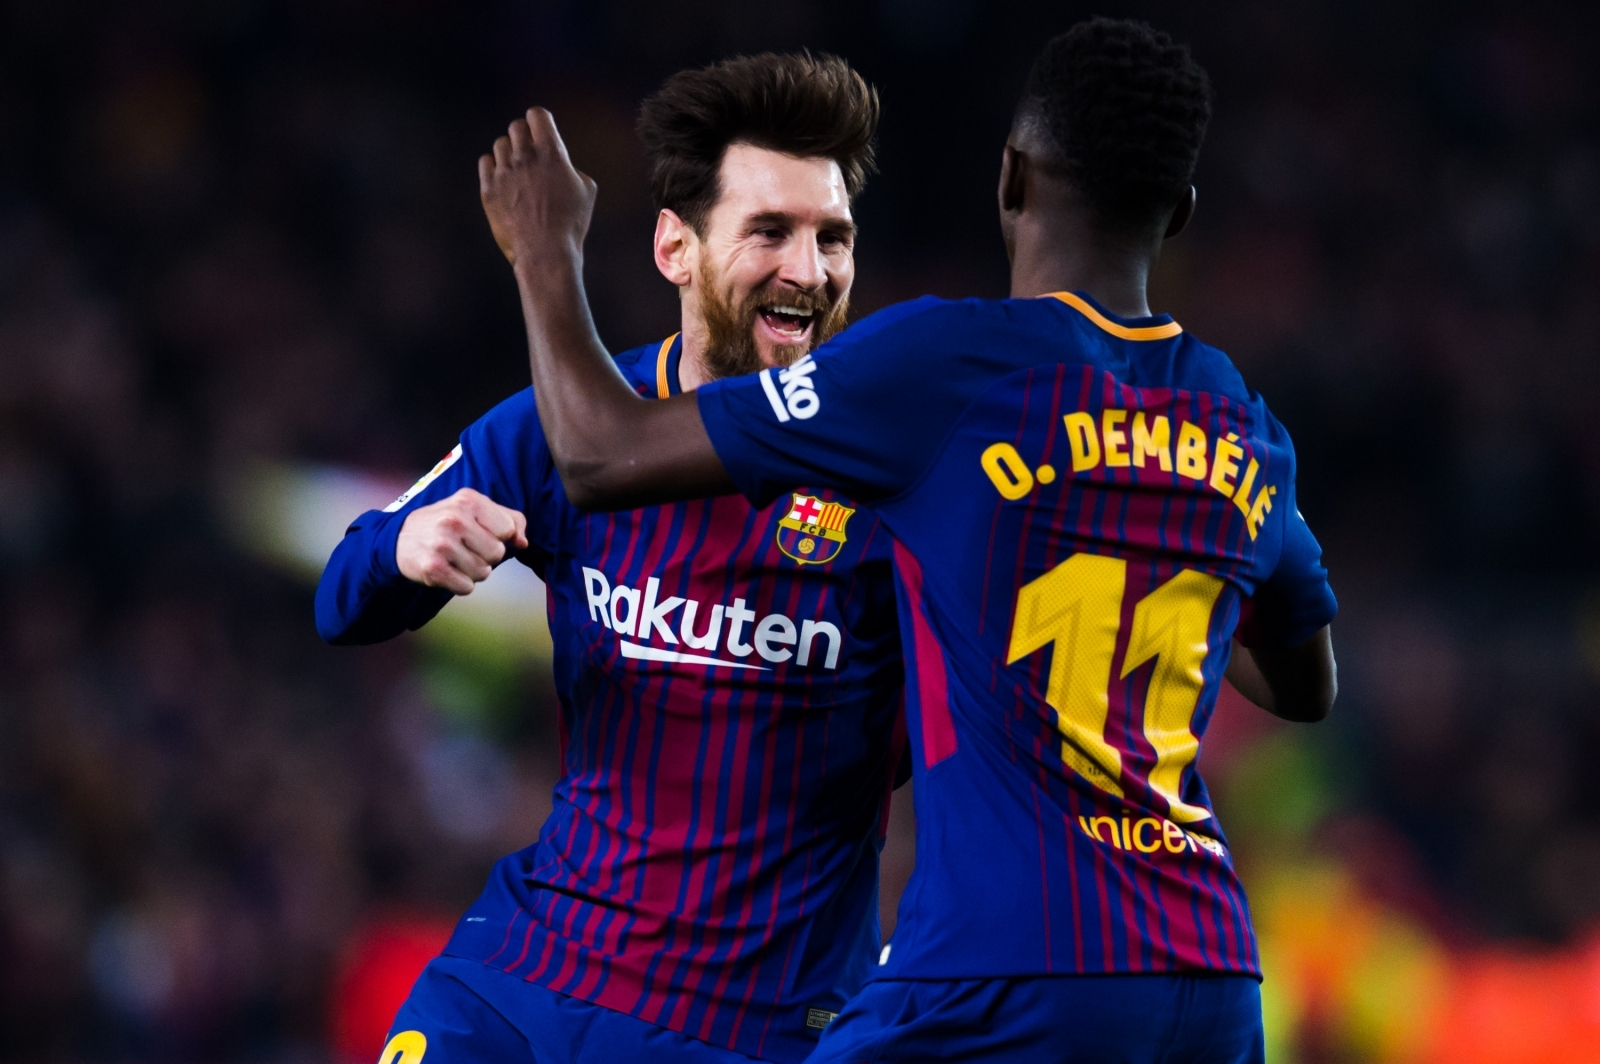 borussia dortmund with Ousmane Dembele Opens About Playing Lionel Messi Positive Barcelona Injuries 1664734 on Sonnenuntergang also Pes 2019 Will Maintain Partnerships With Barca Lfc Arsenal also Mohamed Salah Winning Golden Boot Liverpool Special as well Z Napisami Po Angielsku Motywacja Motywacyjne in addition Camisa De Motocross E Trilha.